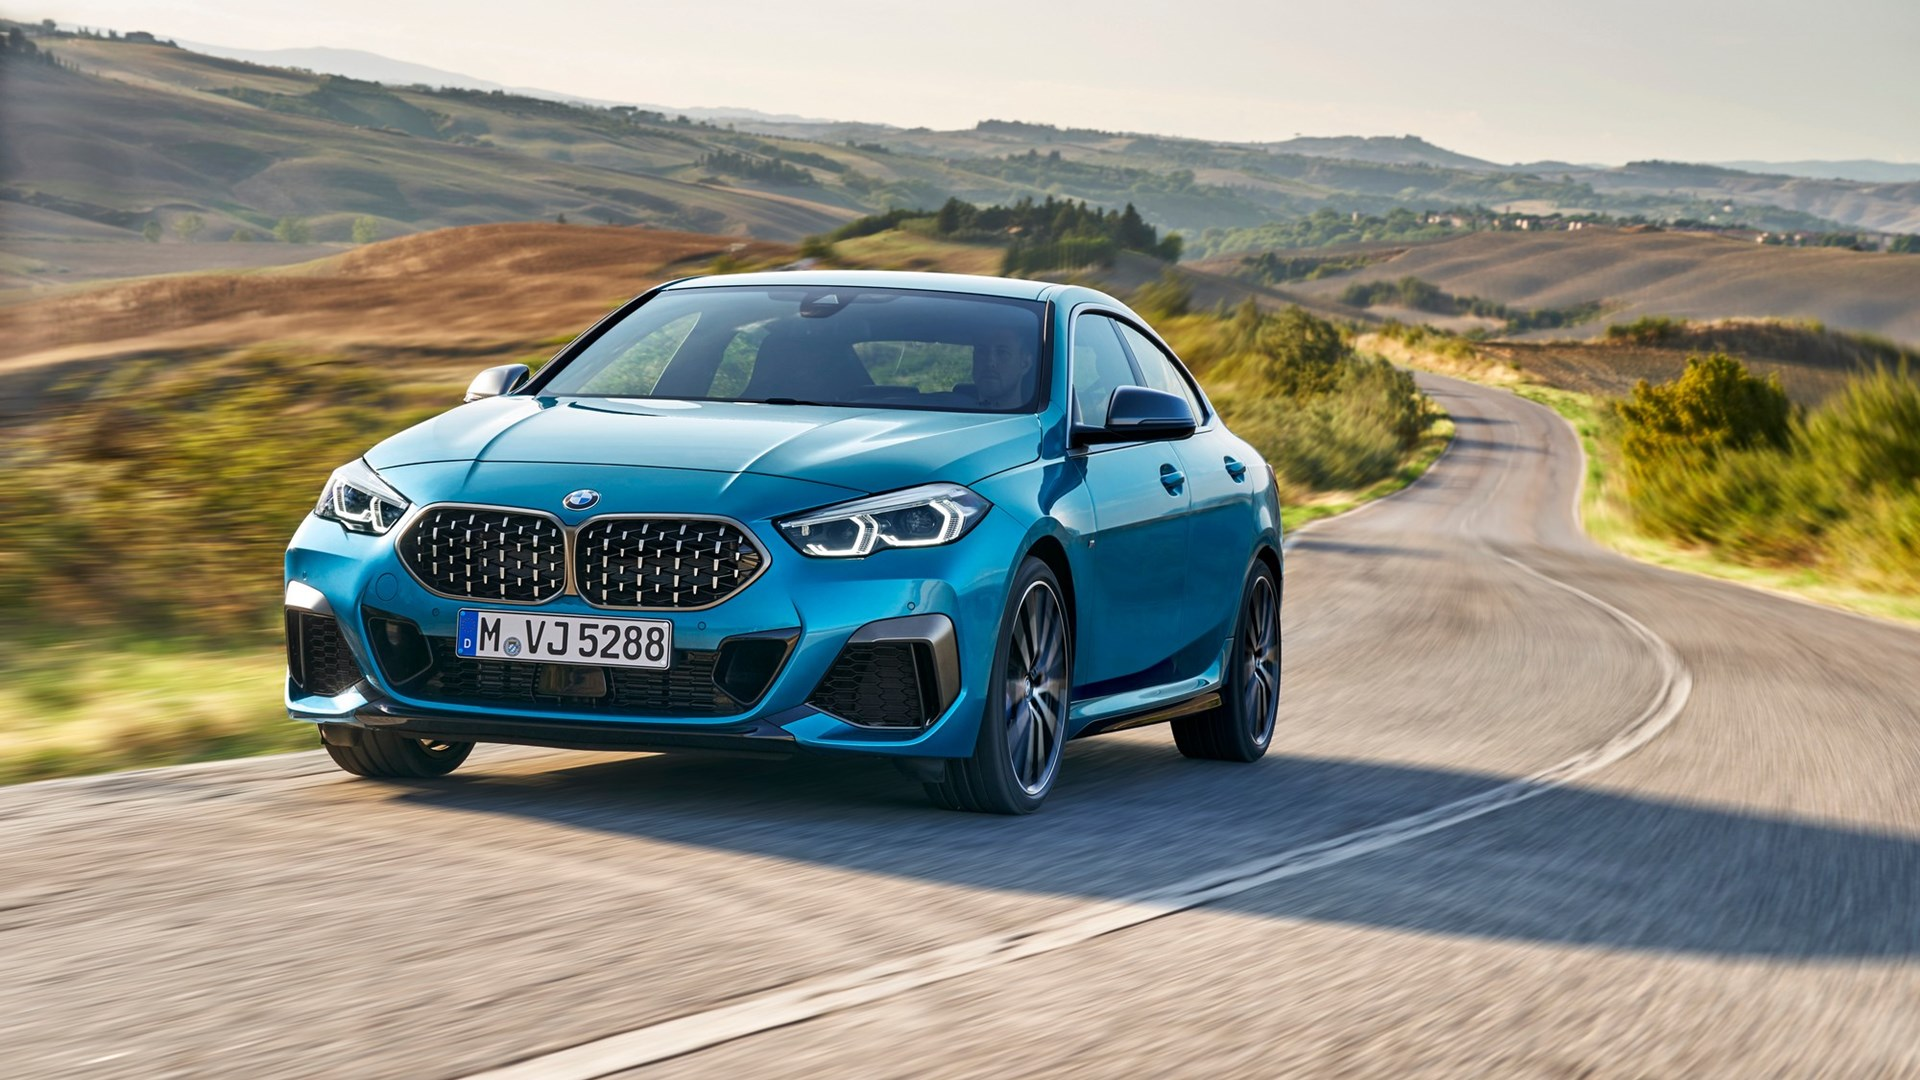 The Bmw 2 Series Grand Coupe 2020 Models Differ In Design But Not In Performance The Market Herald